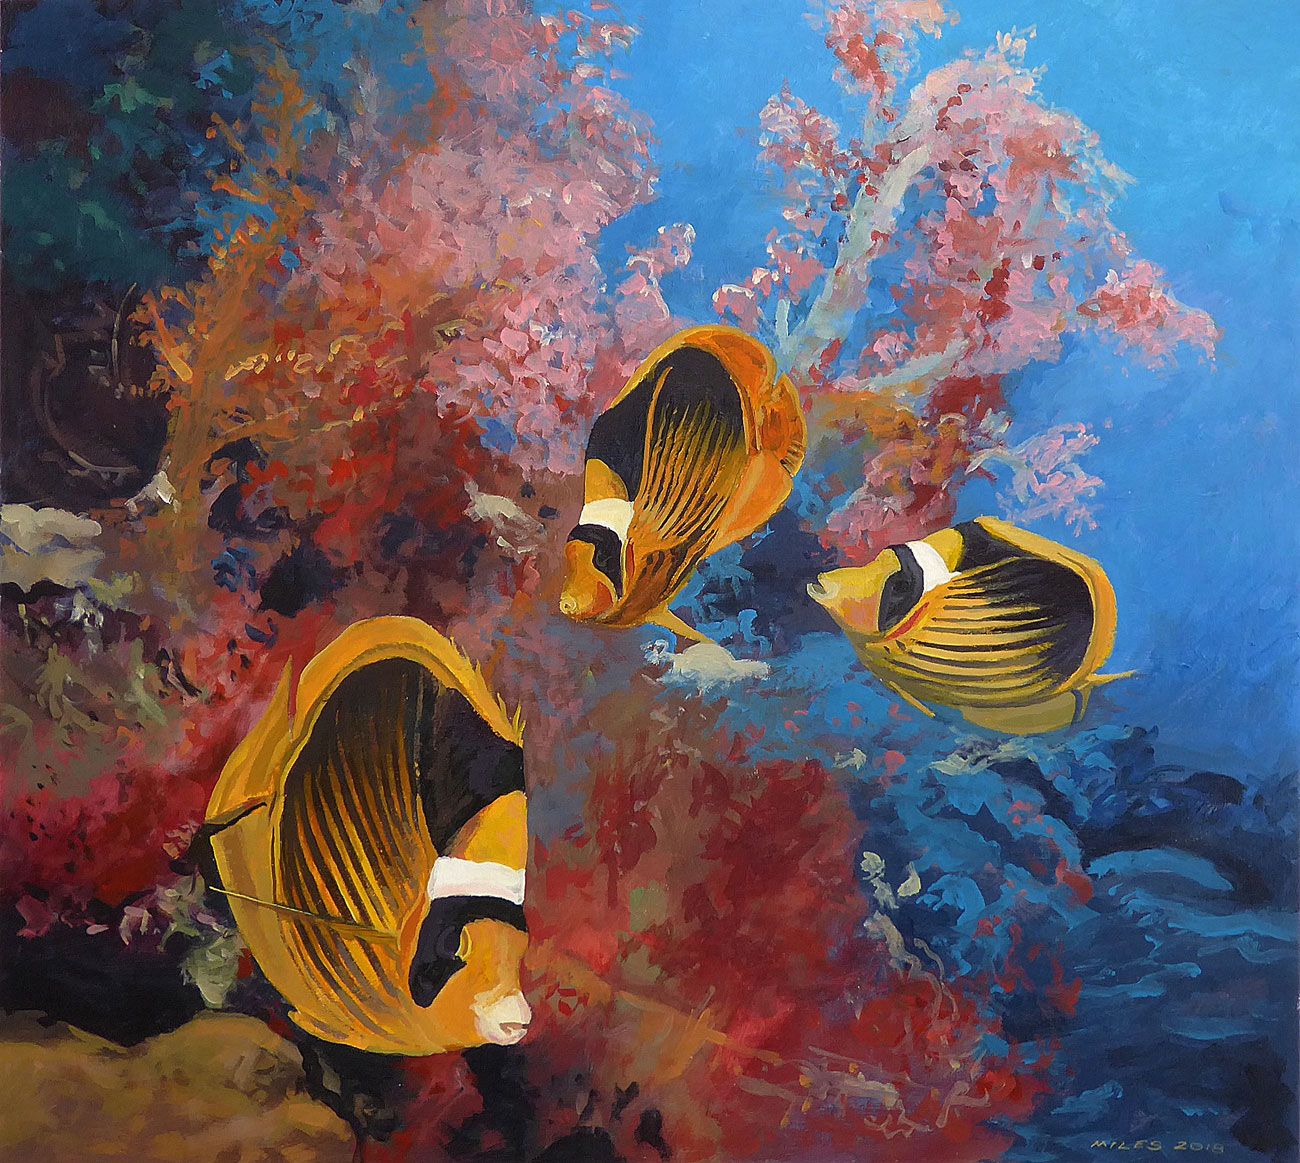 Underwater-Painting-Gerry-Miles-Racoon-Butterflyfishes-and-soft-coral.jpg